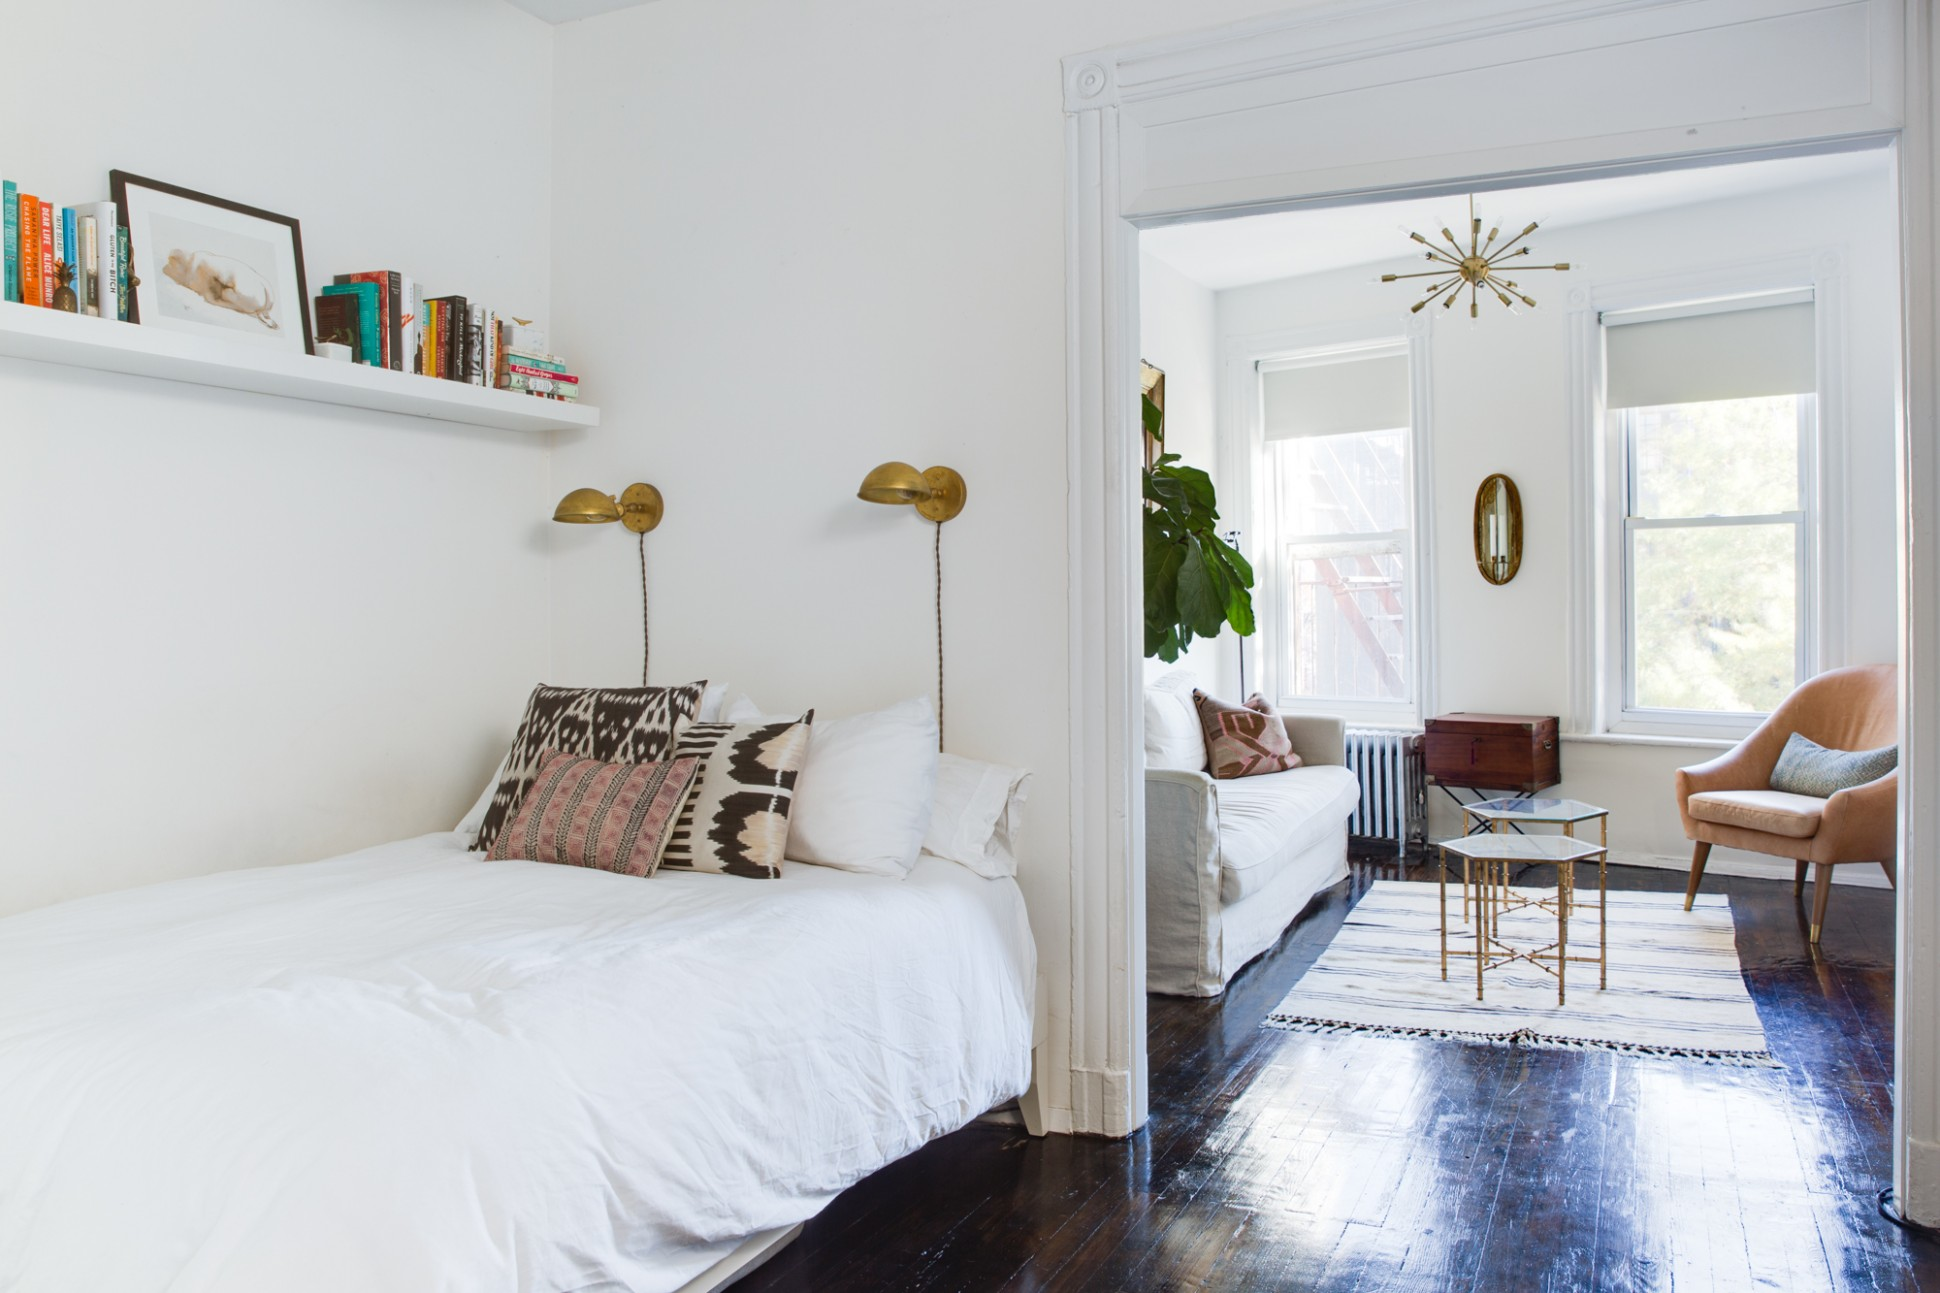 9 Small Bedroom Ideas - How to Decorate a Small Bedroom  - Bedroom Ideas Small